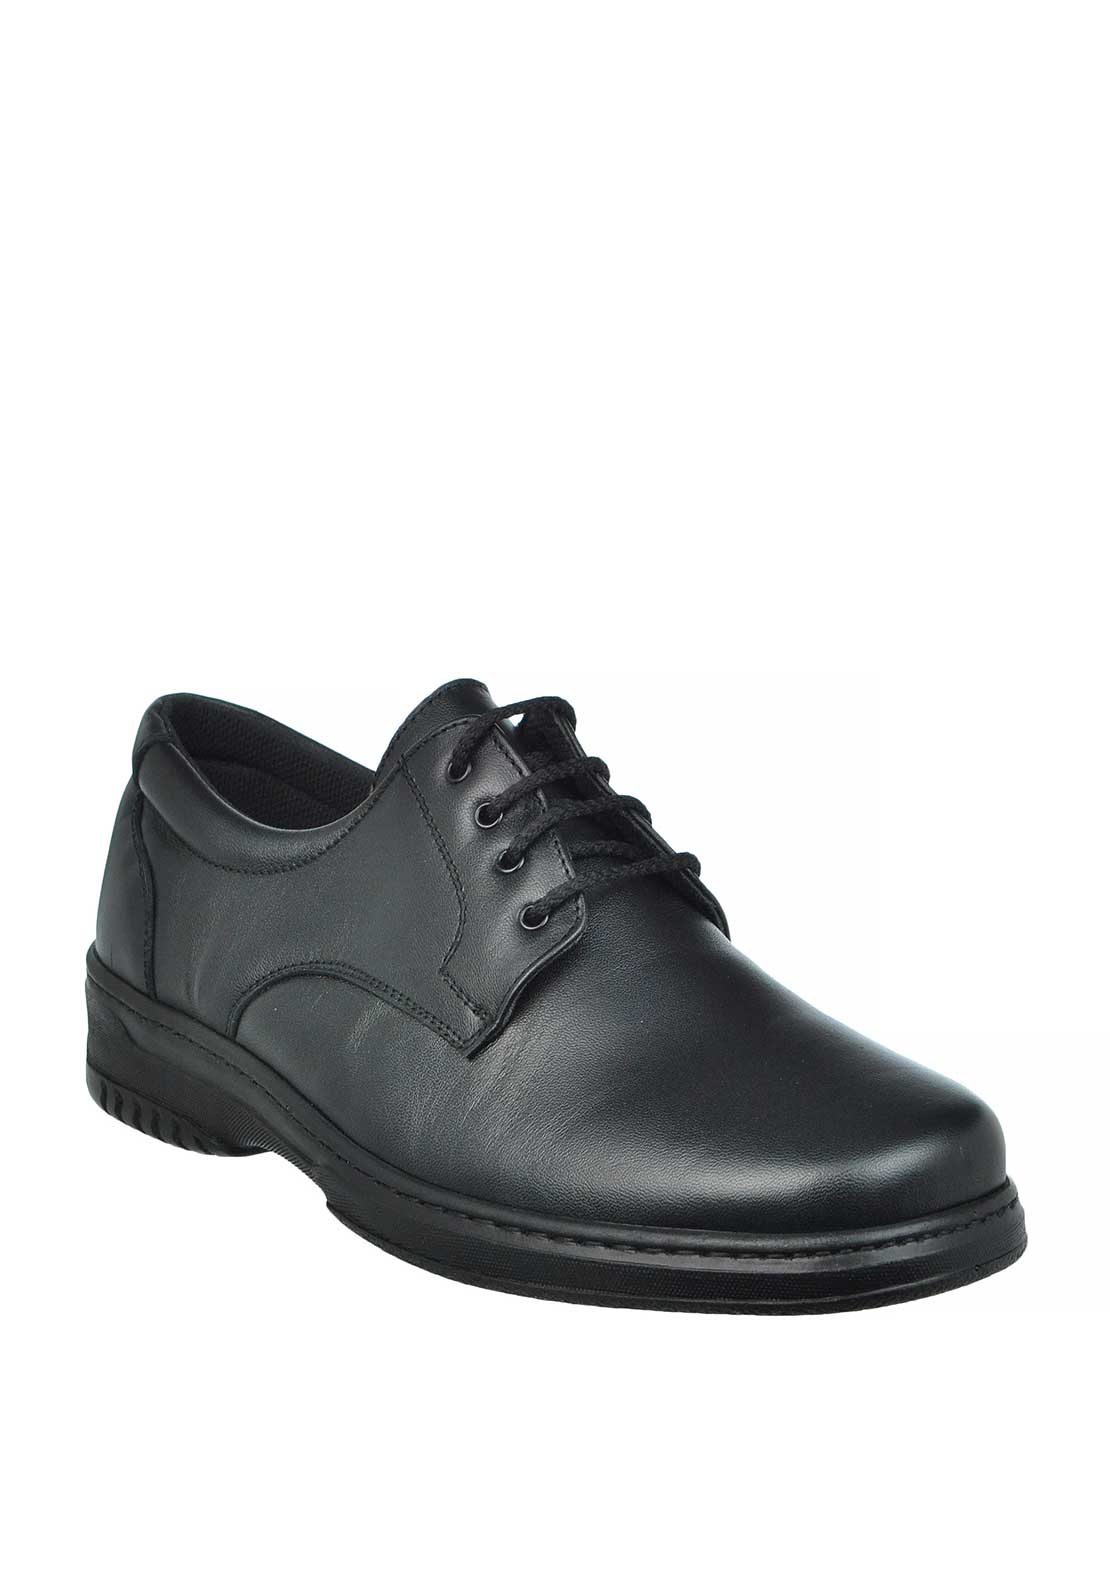 Pinoso Mens Leather Diabetic Laced Shoes, Black